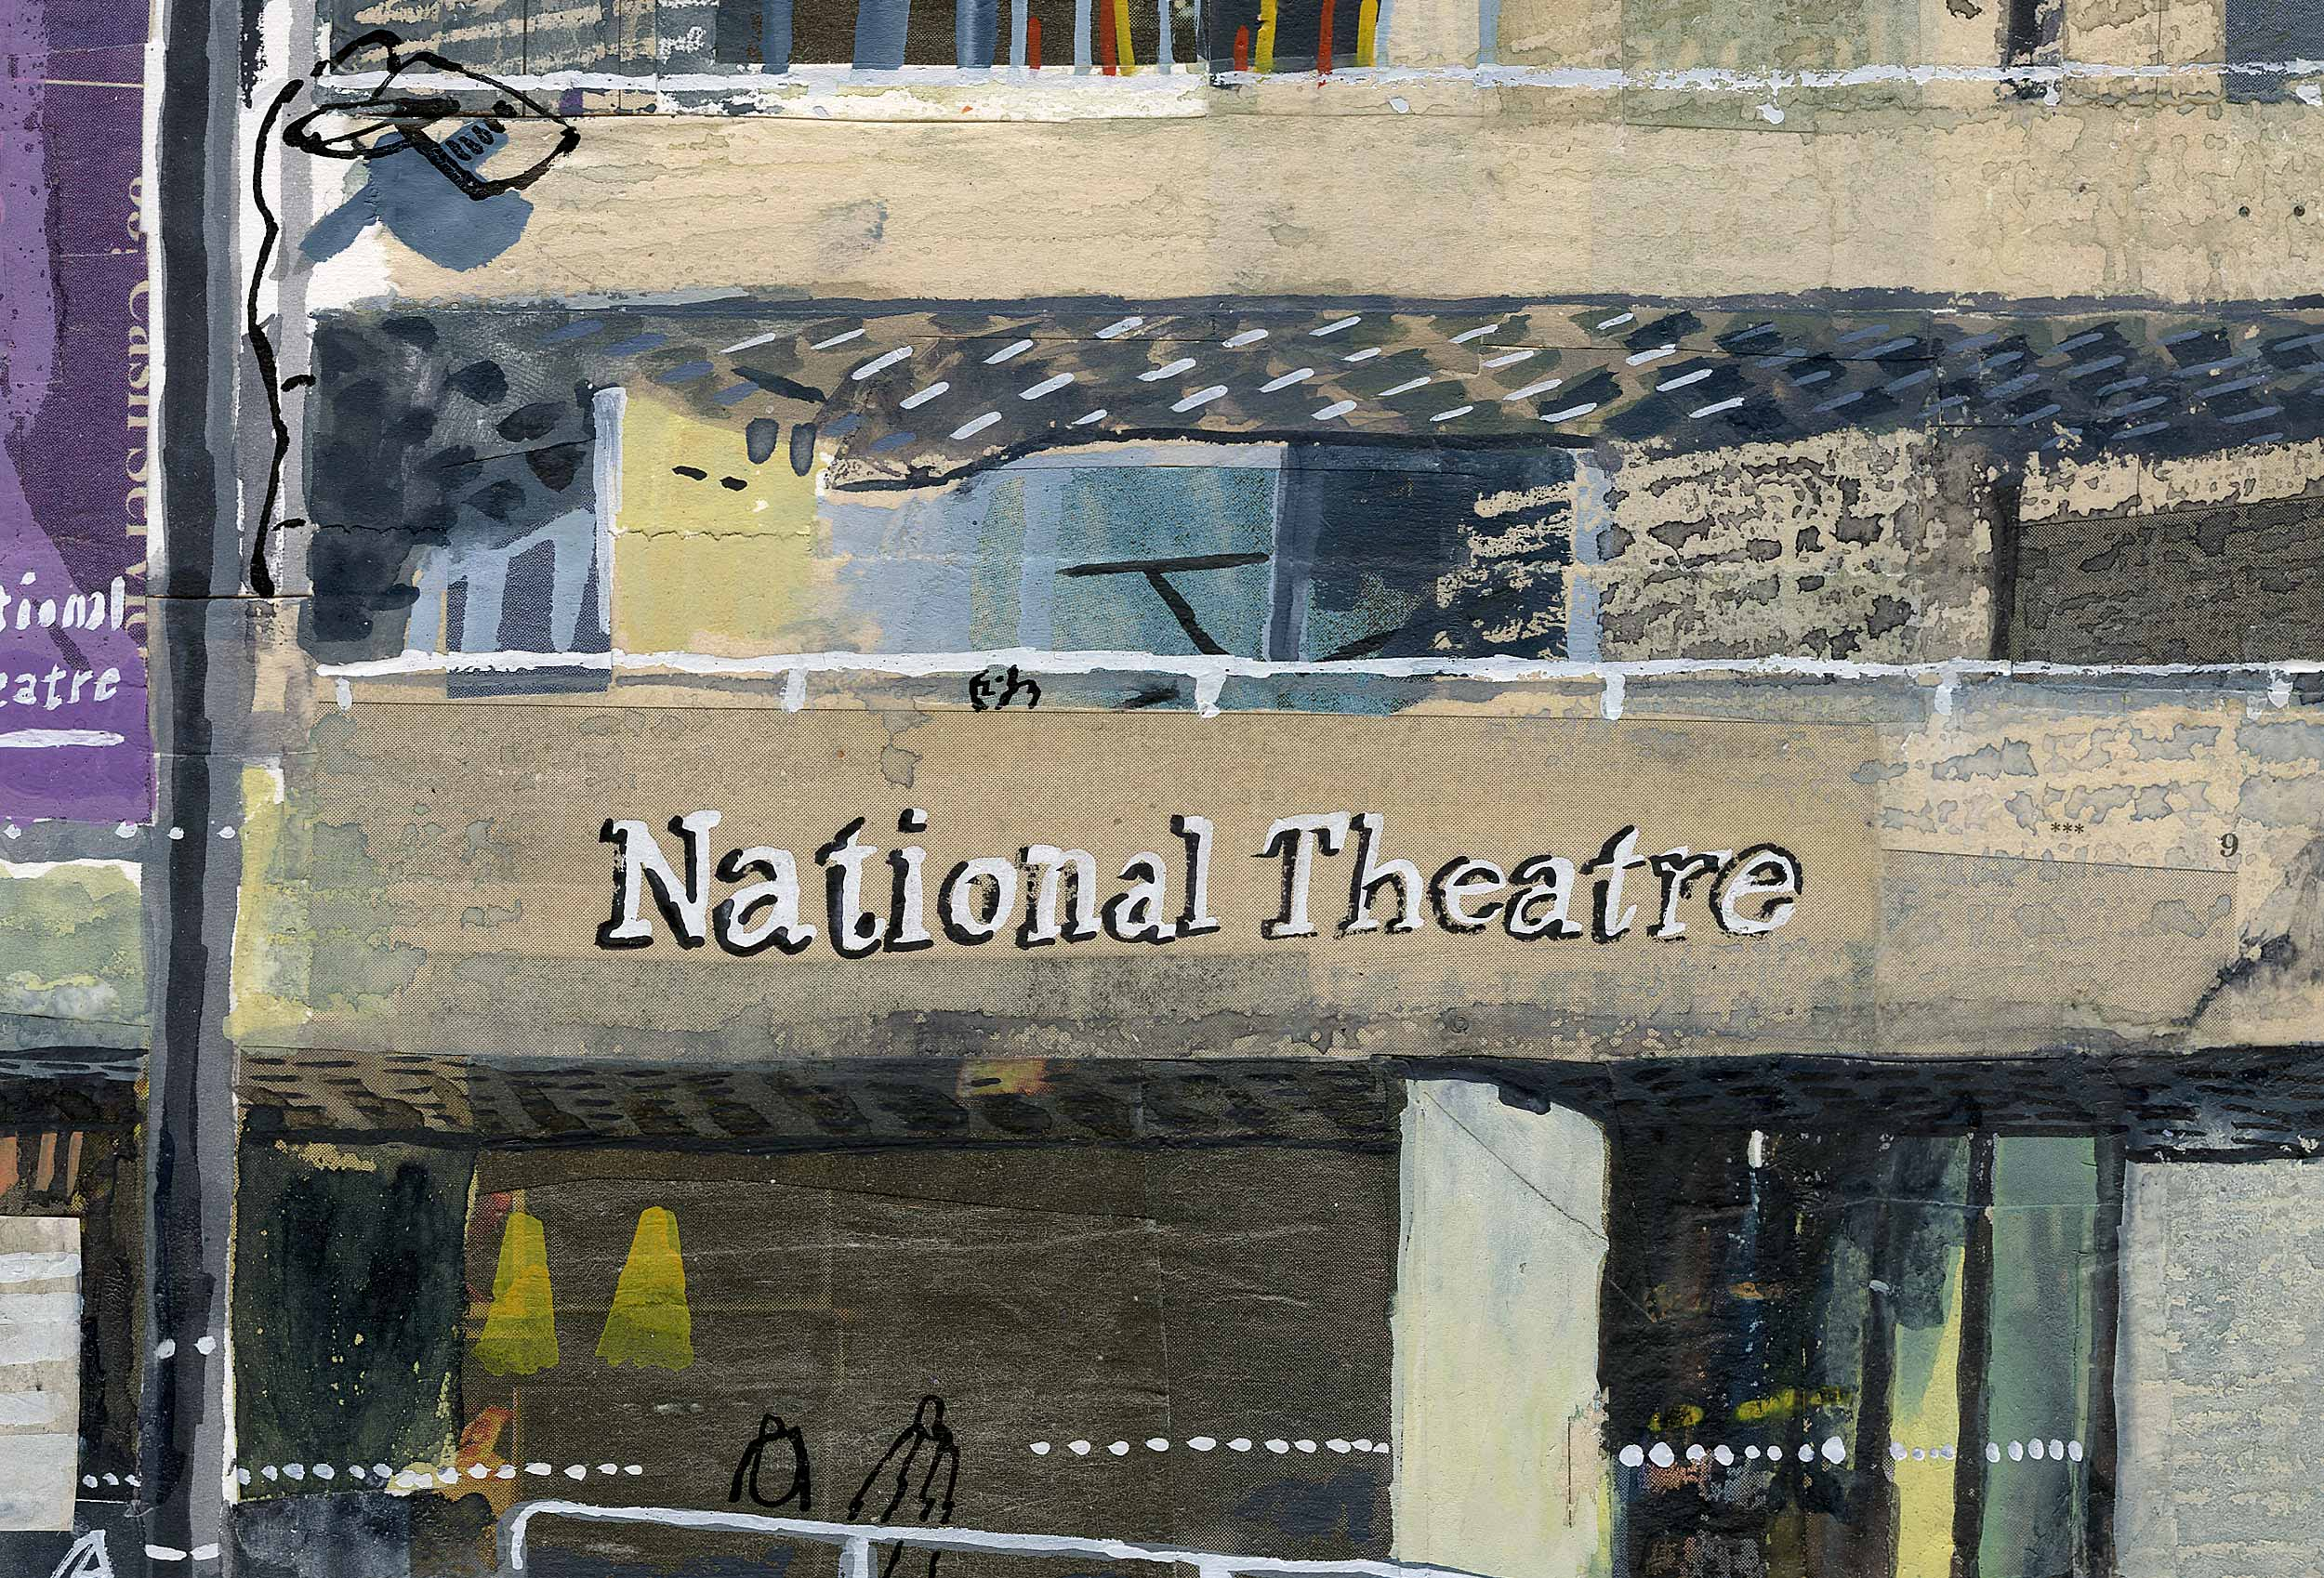 National Theatre by James Oses, image 2